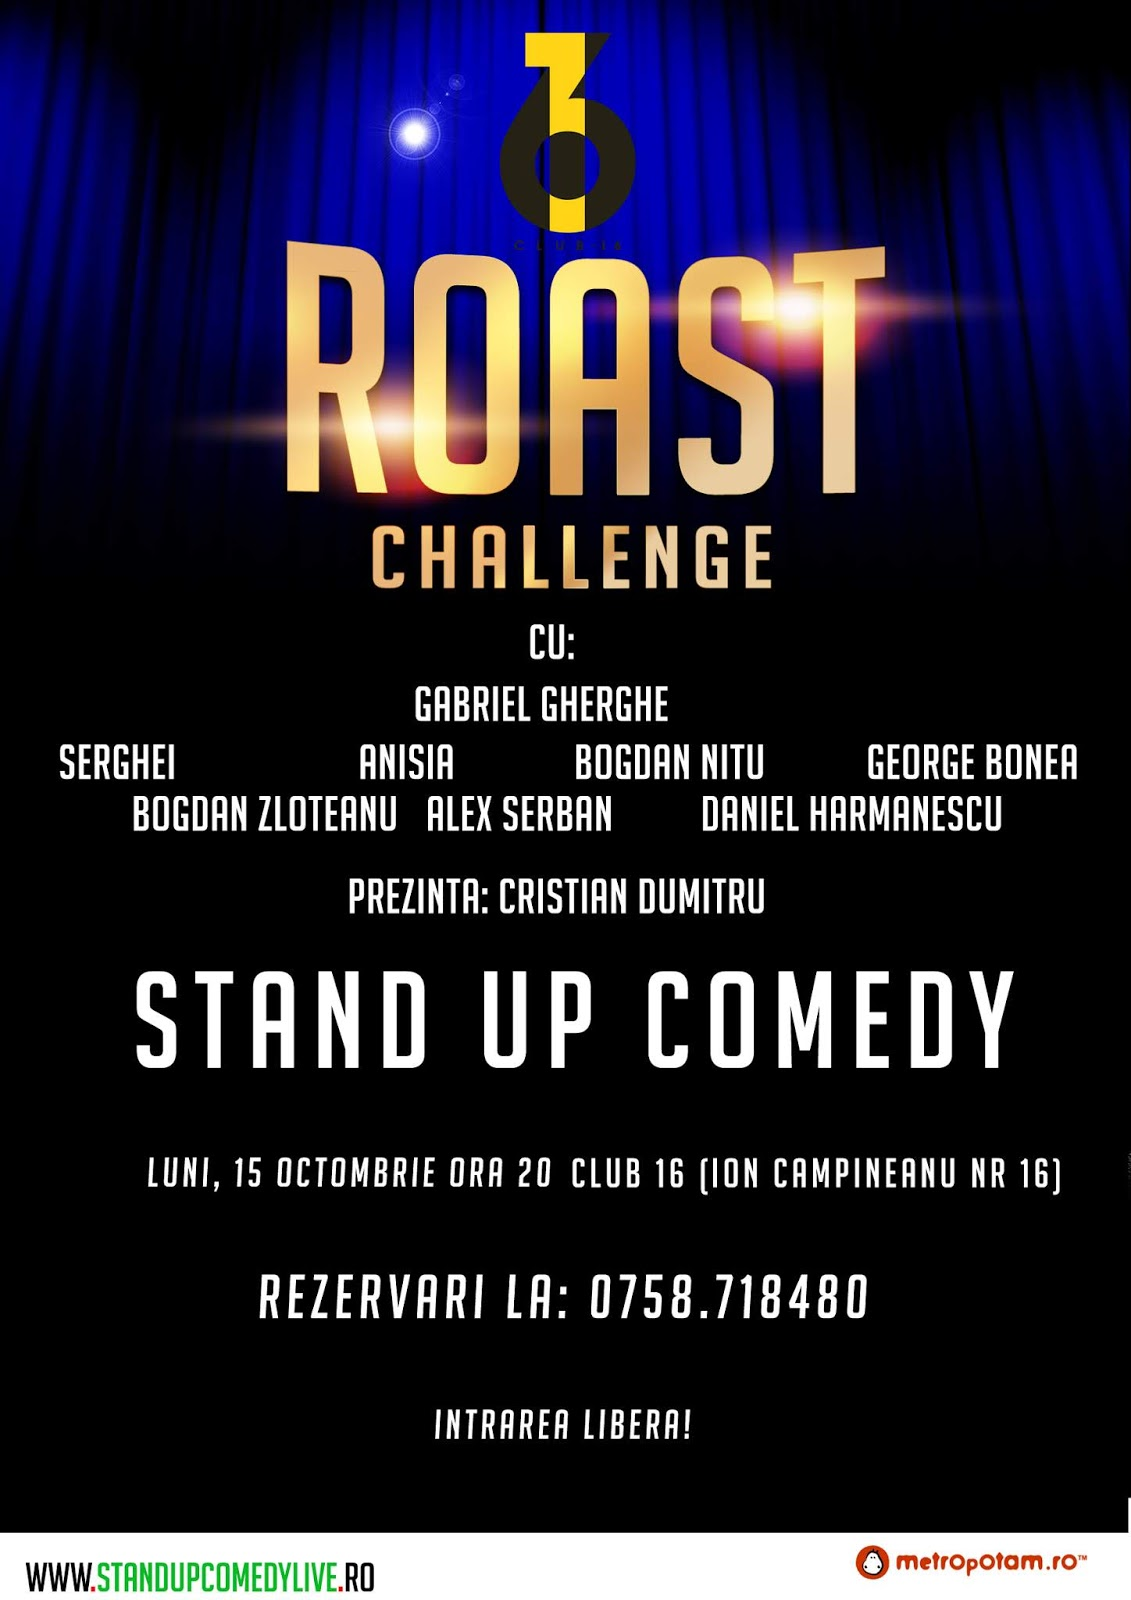 Roast Challenge (Stand-Up Comedy) Luni 15 Octombrie Bucuresti